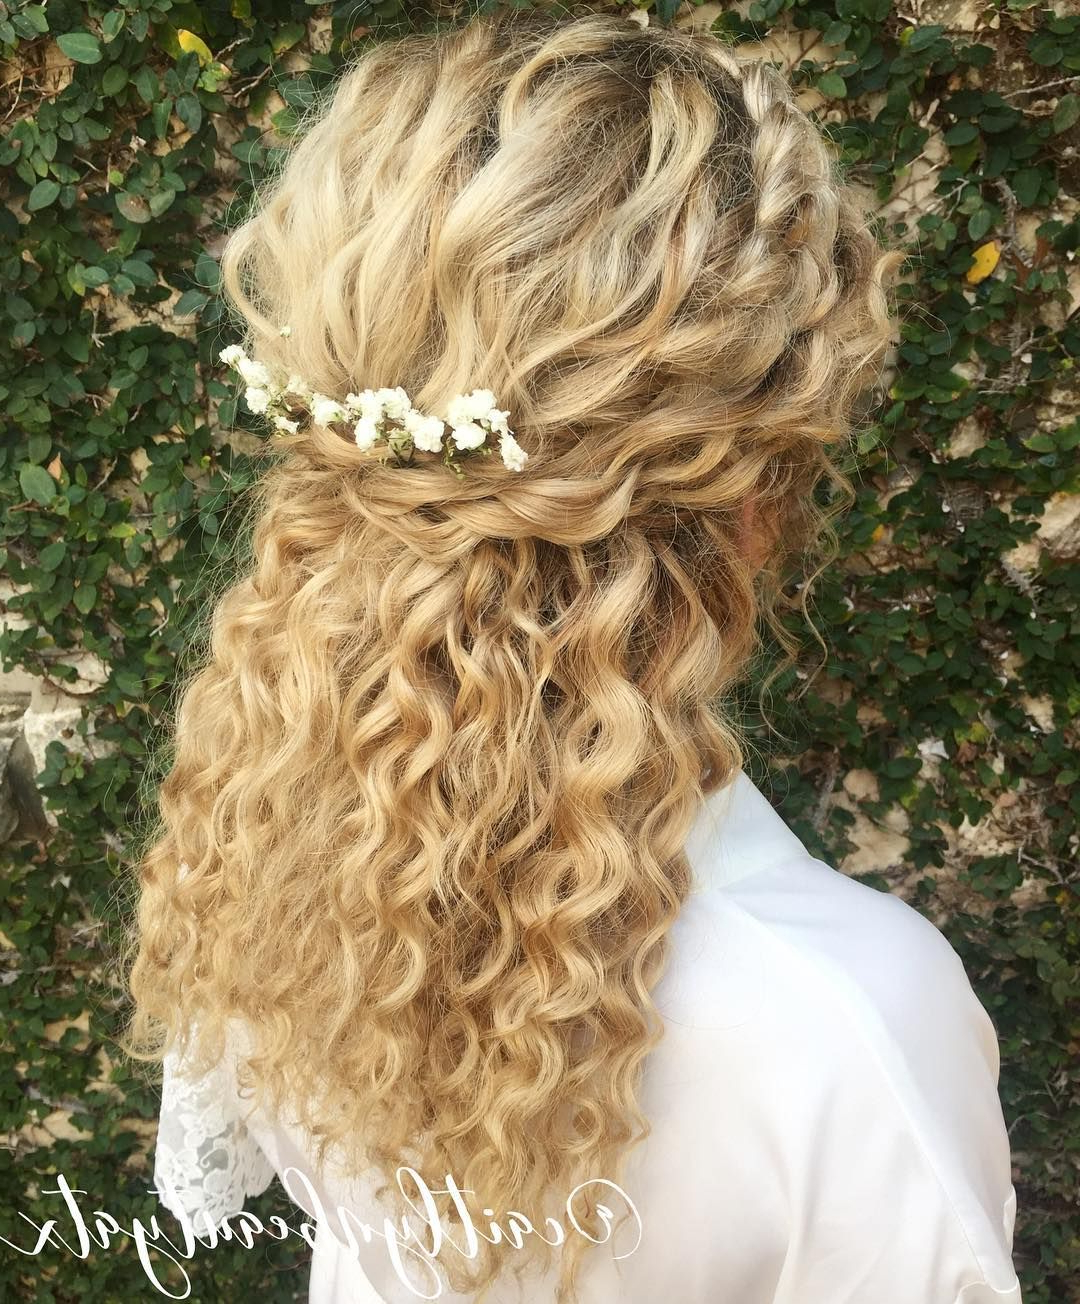 Natural Curly Bridal Hair (View 18 of 20)